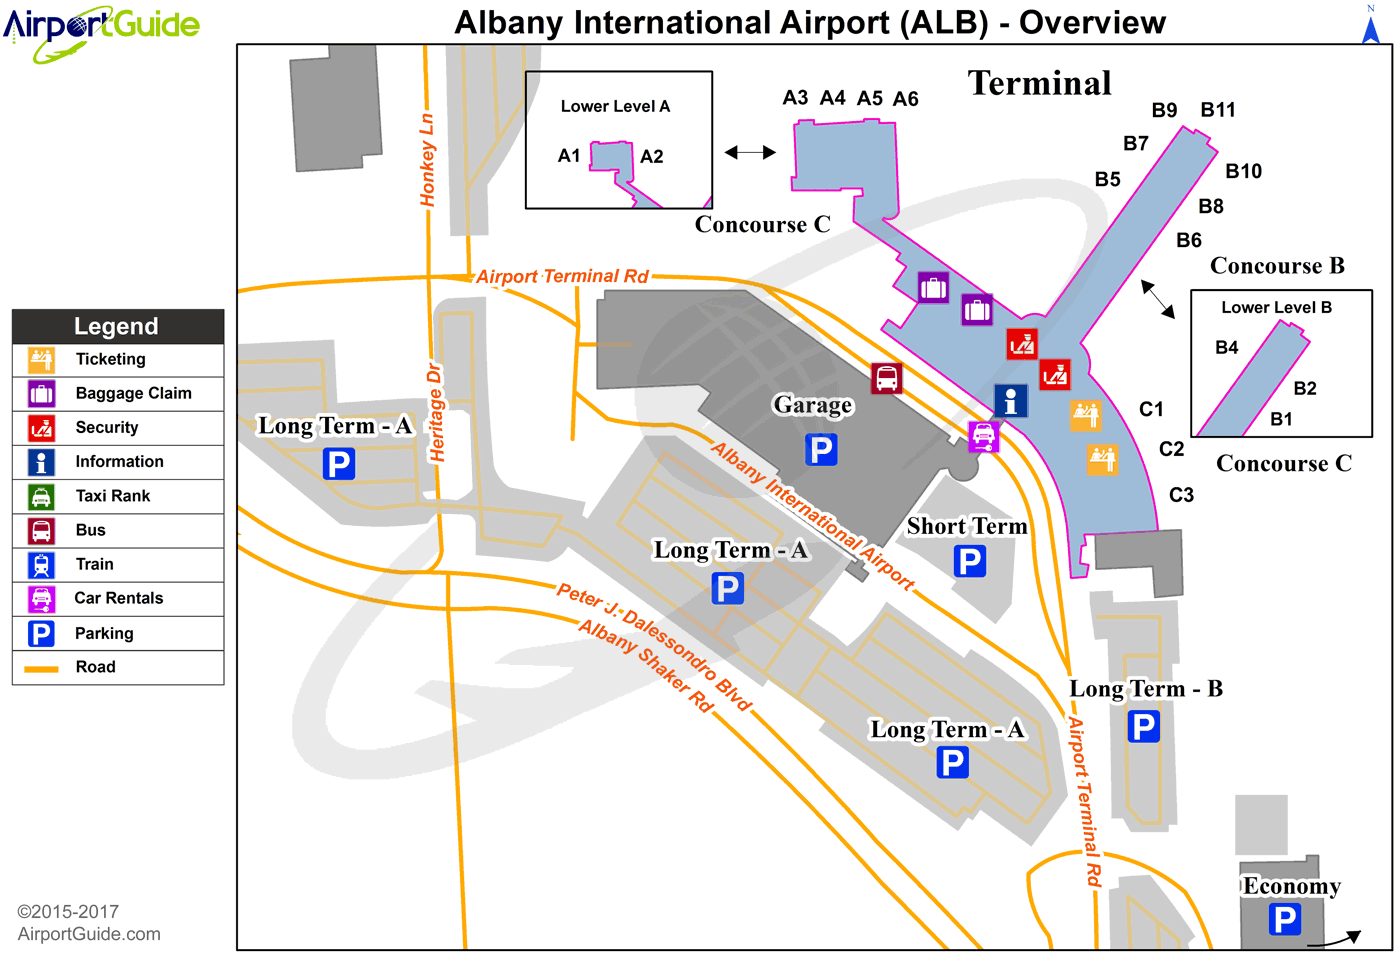 albany airport terminal map Albany Albany International Alb Airport Terminal Map Overview Airport Guide Airport Airports Terminal albany airport terminal map